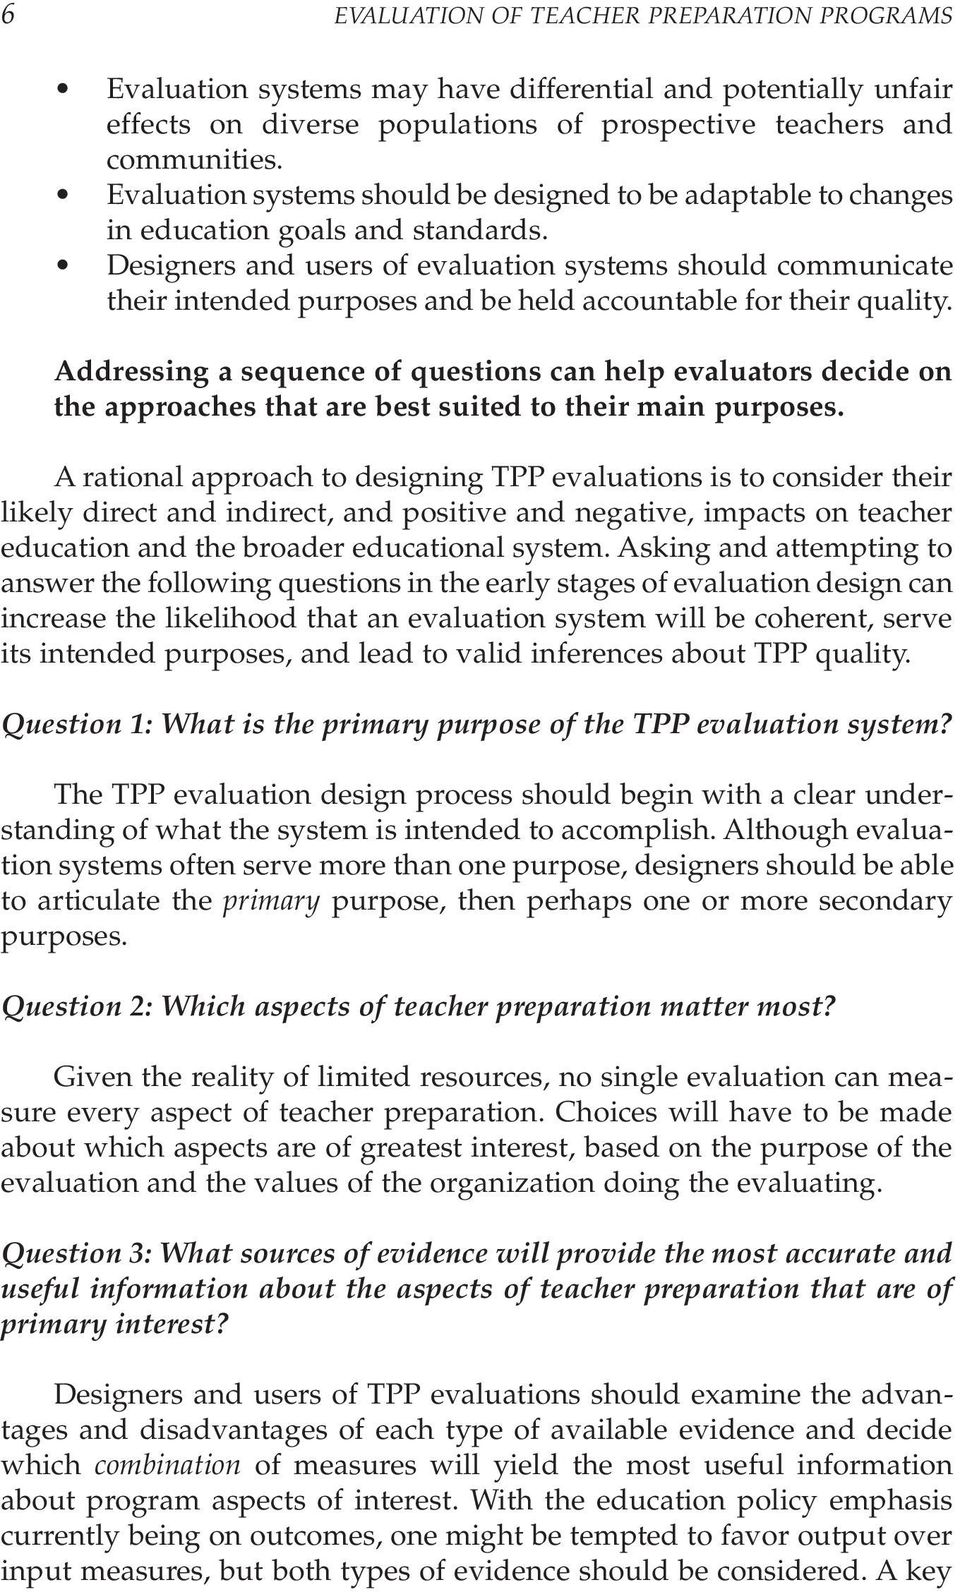 Designers and users of evaluation systems should communicate their intended purposes and be held accountable for their quality.